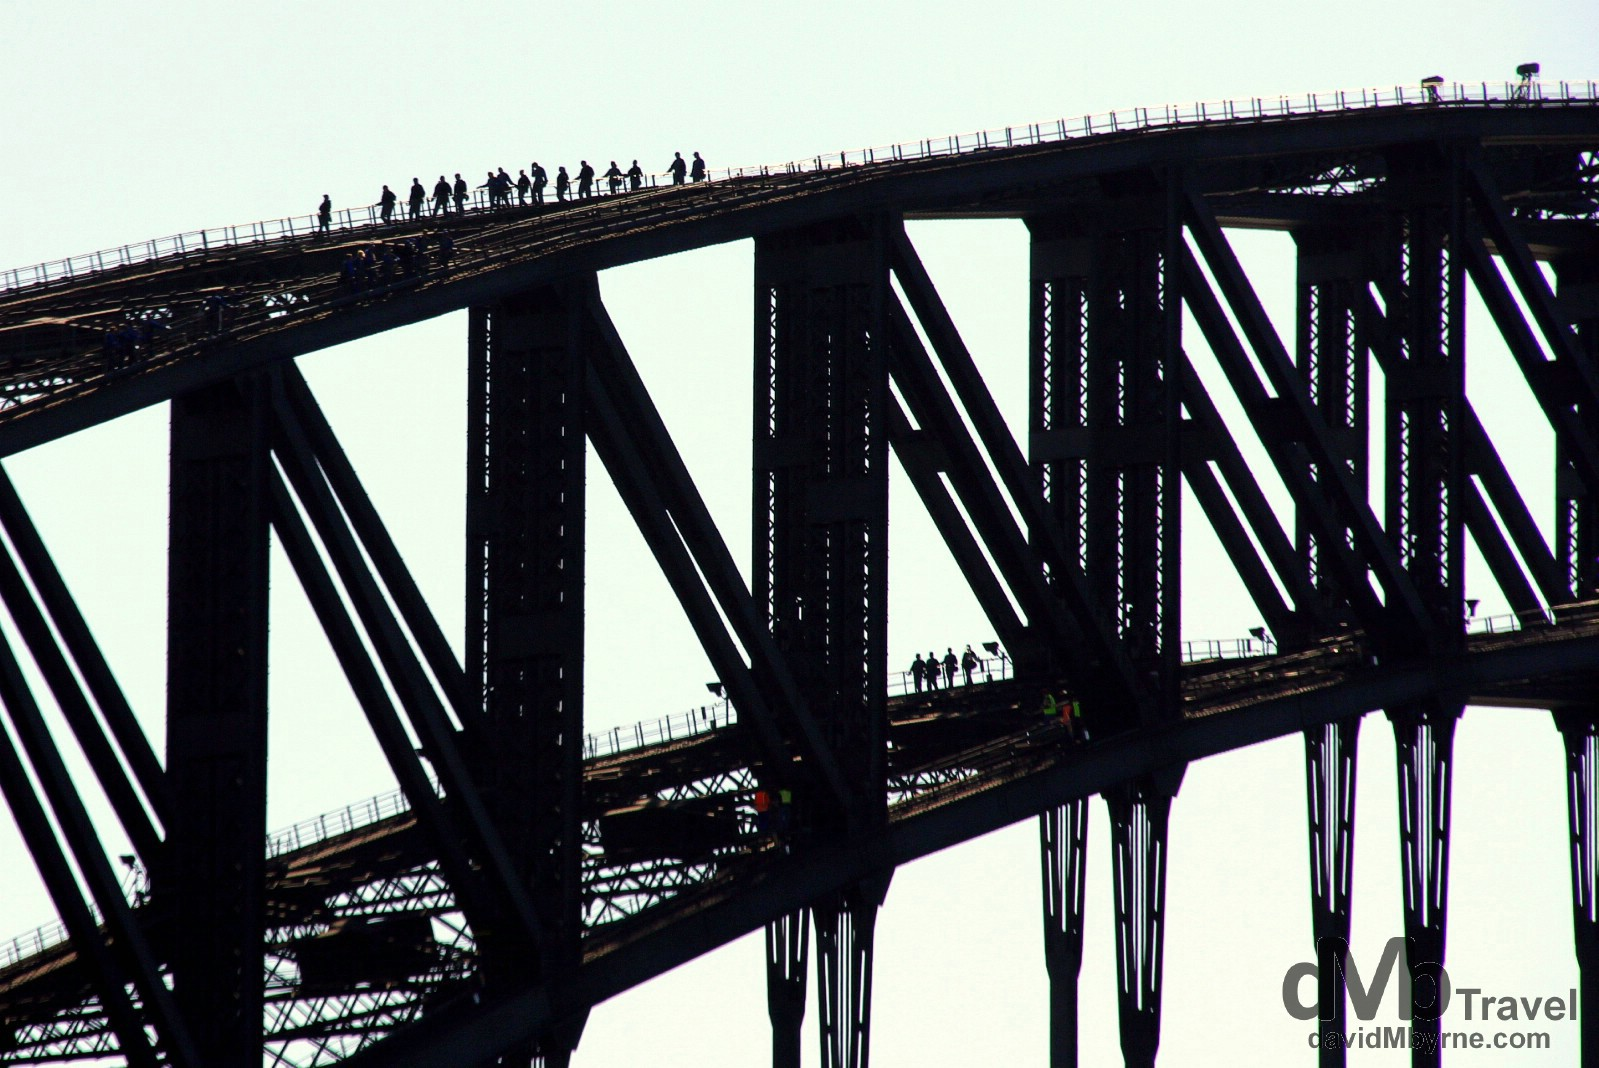 Climbers on the Sydney Harbour Bridge as seen from the Manly Ferry in Sydney Cove, Sydney, Australia. June 8th 2012.